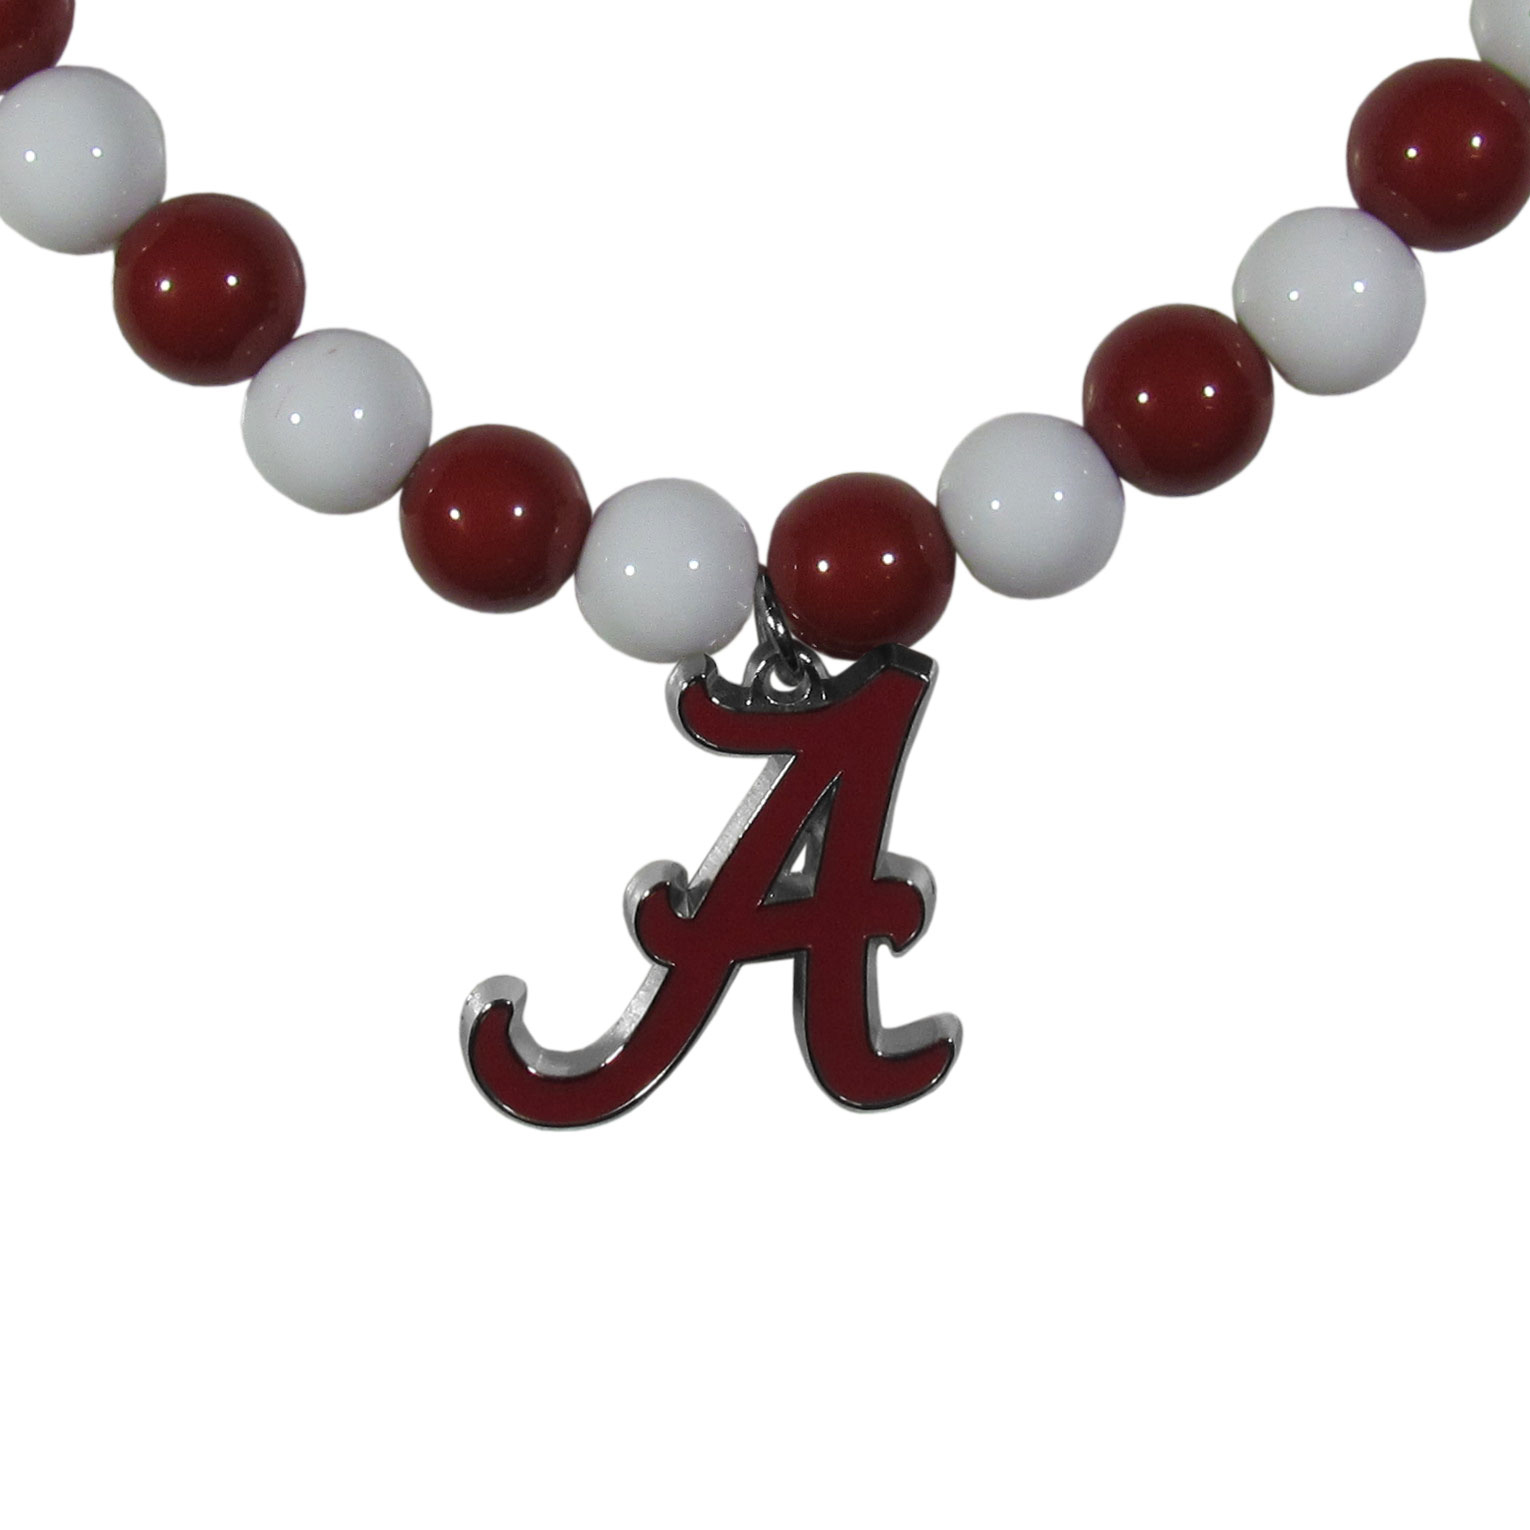 Alabama Crimson Tide Fan Bead Necklace - Make a big statement with our fan bead necklaces! These brightly colored necklace have a 24 inch string of alternating colored beads with an extra large, high-polish Alabama Crimson Tide pendant.